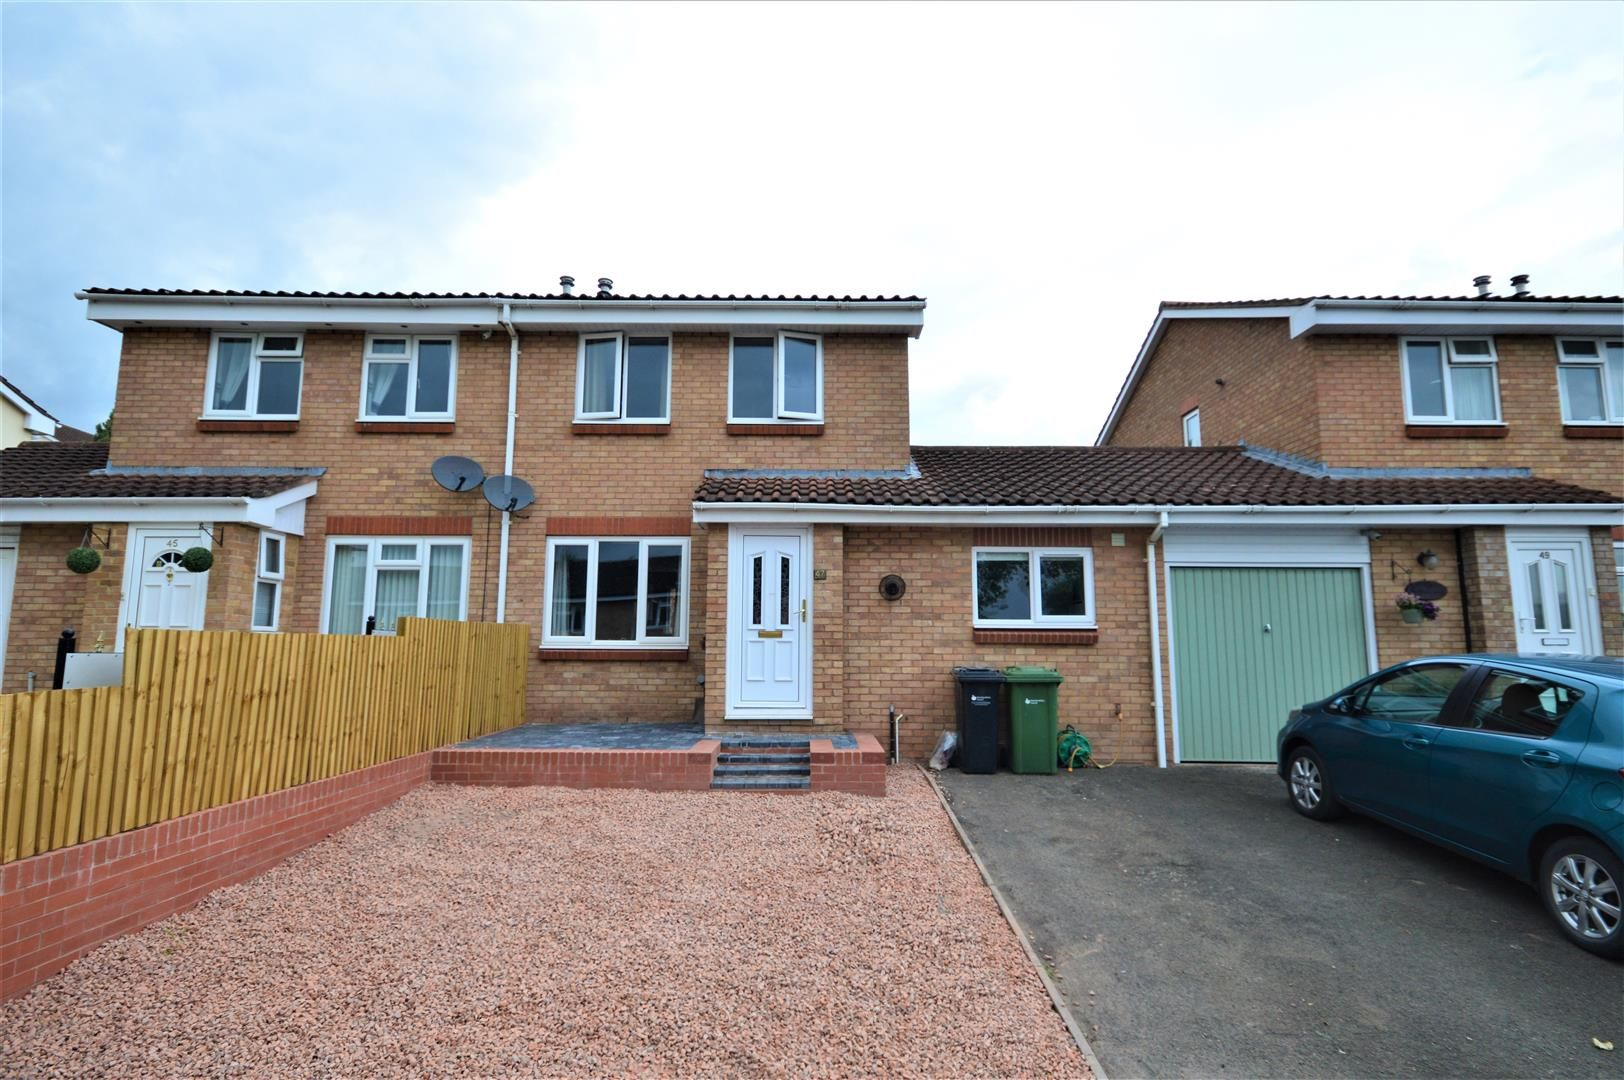 3 bed semi-detached for sale, HR4